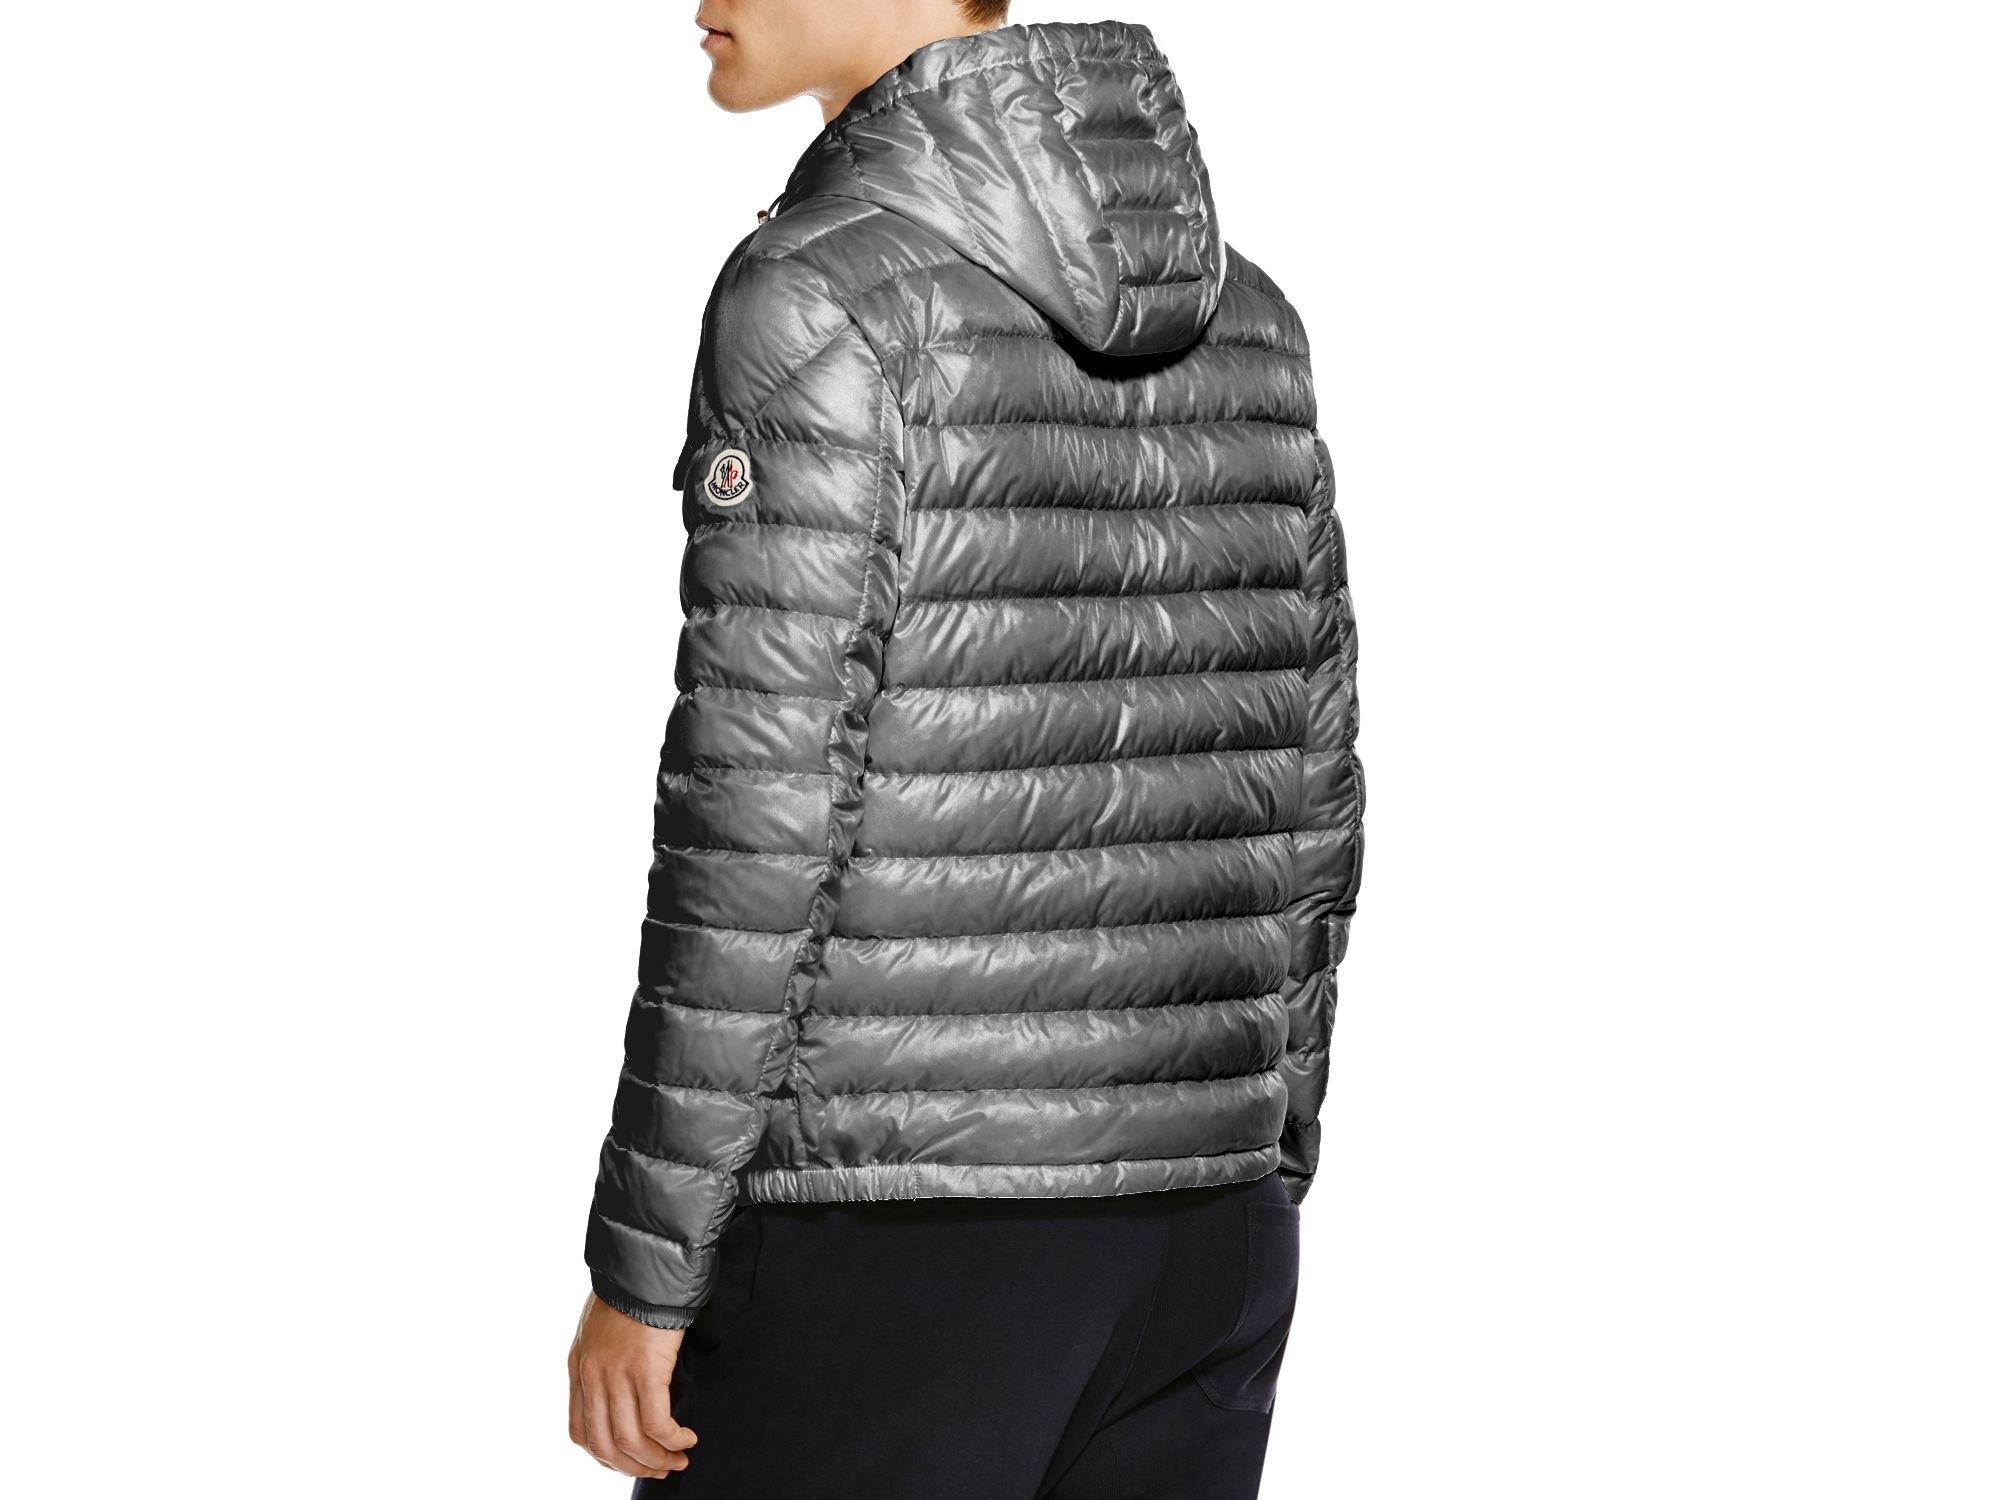 moncler douret quilted down jacket in gray for men lyst. Black Bedroom Furniture Sets. Home Design Ideas